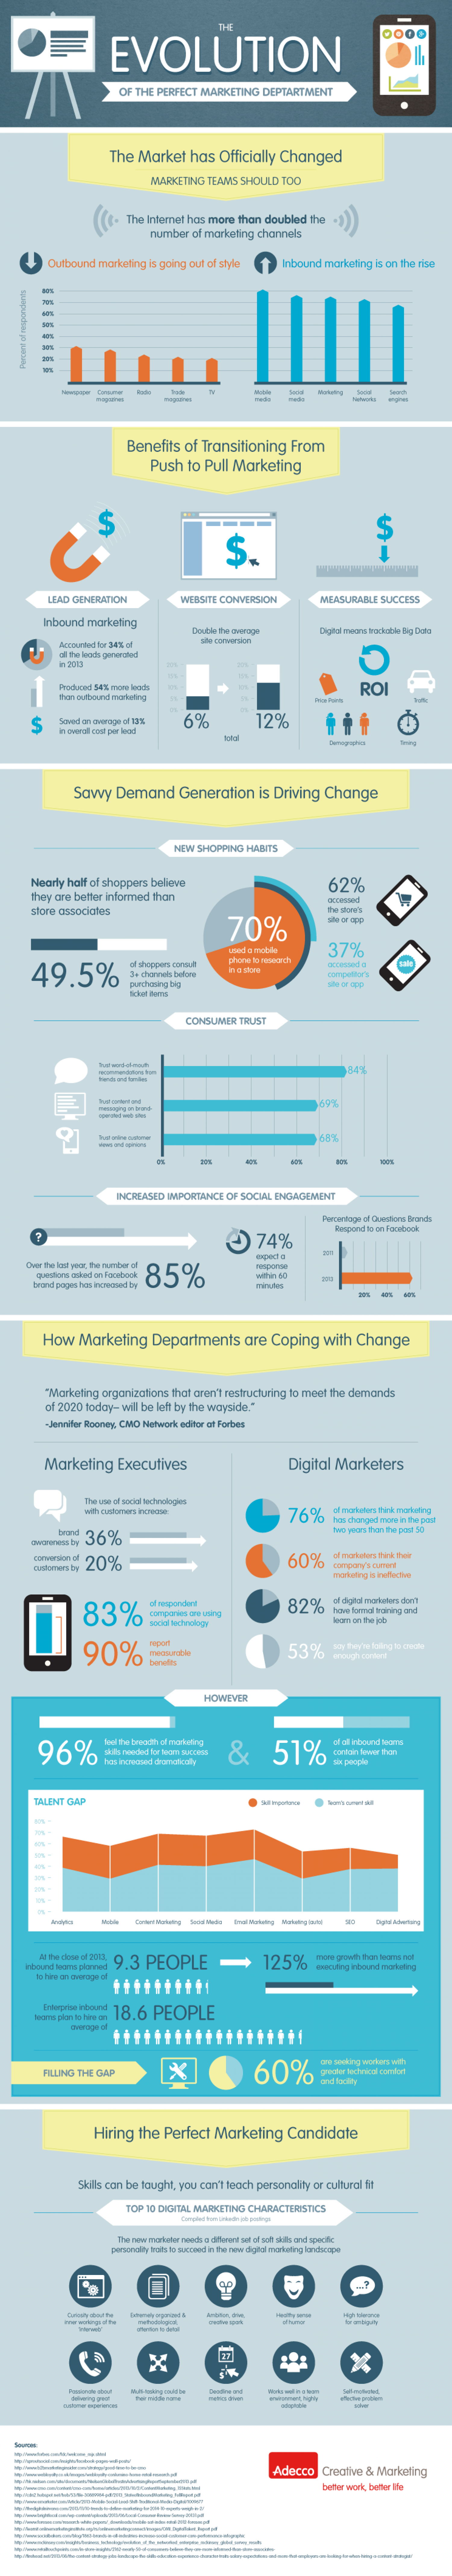 Infographic - Evolution Of The Marketing Department